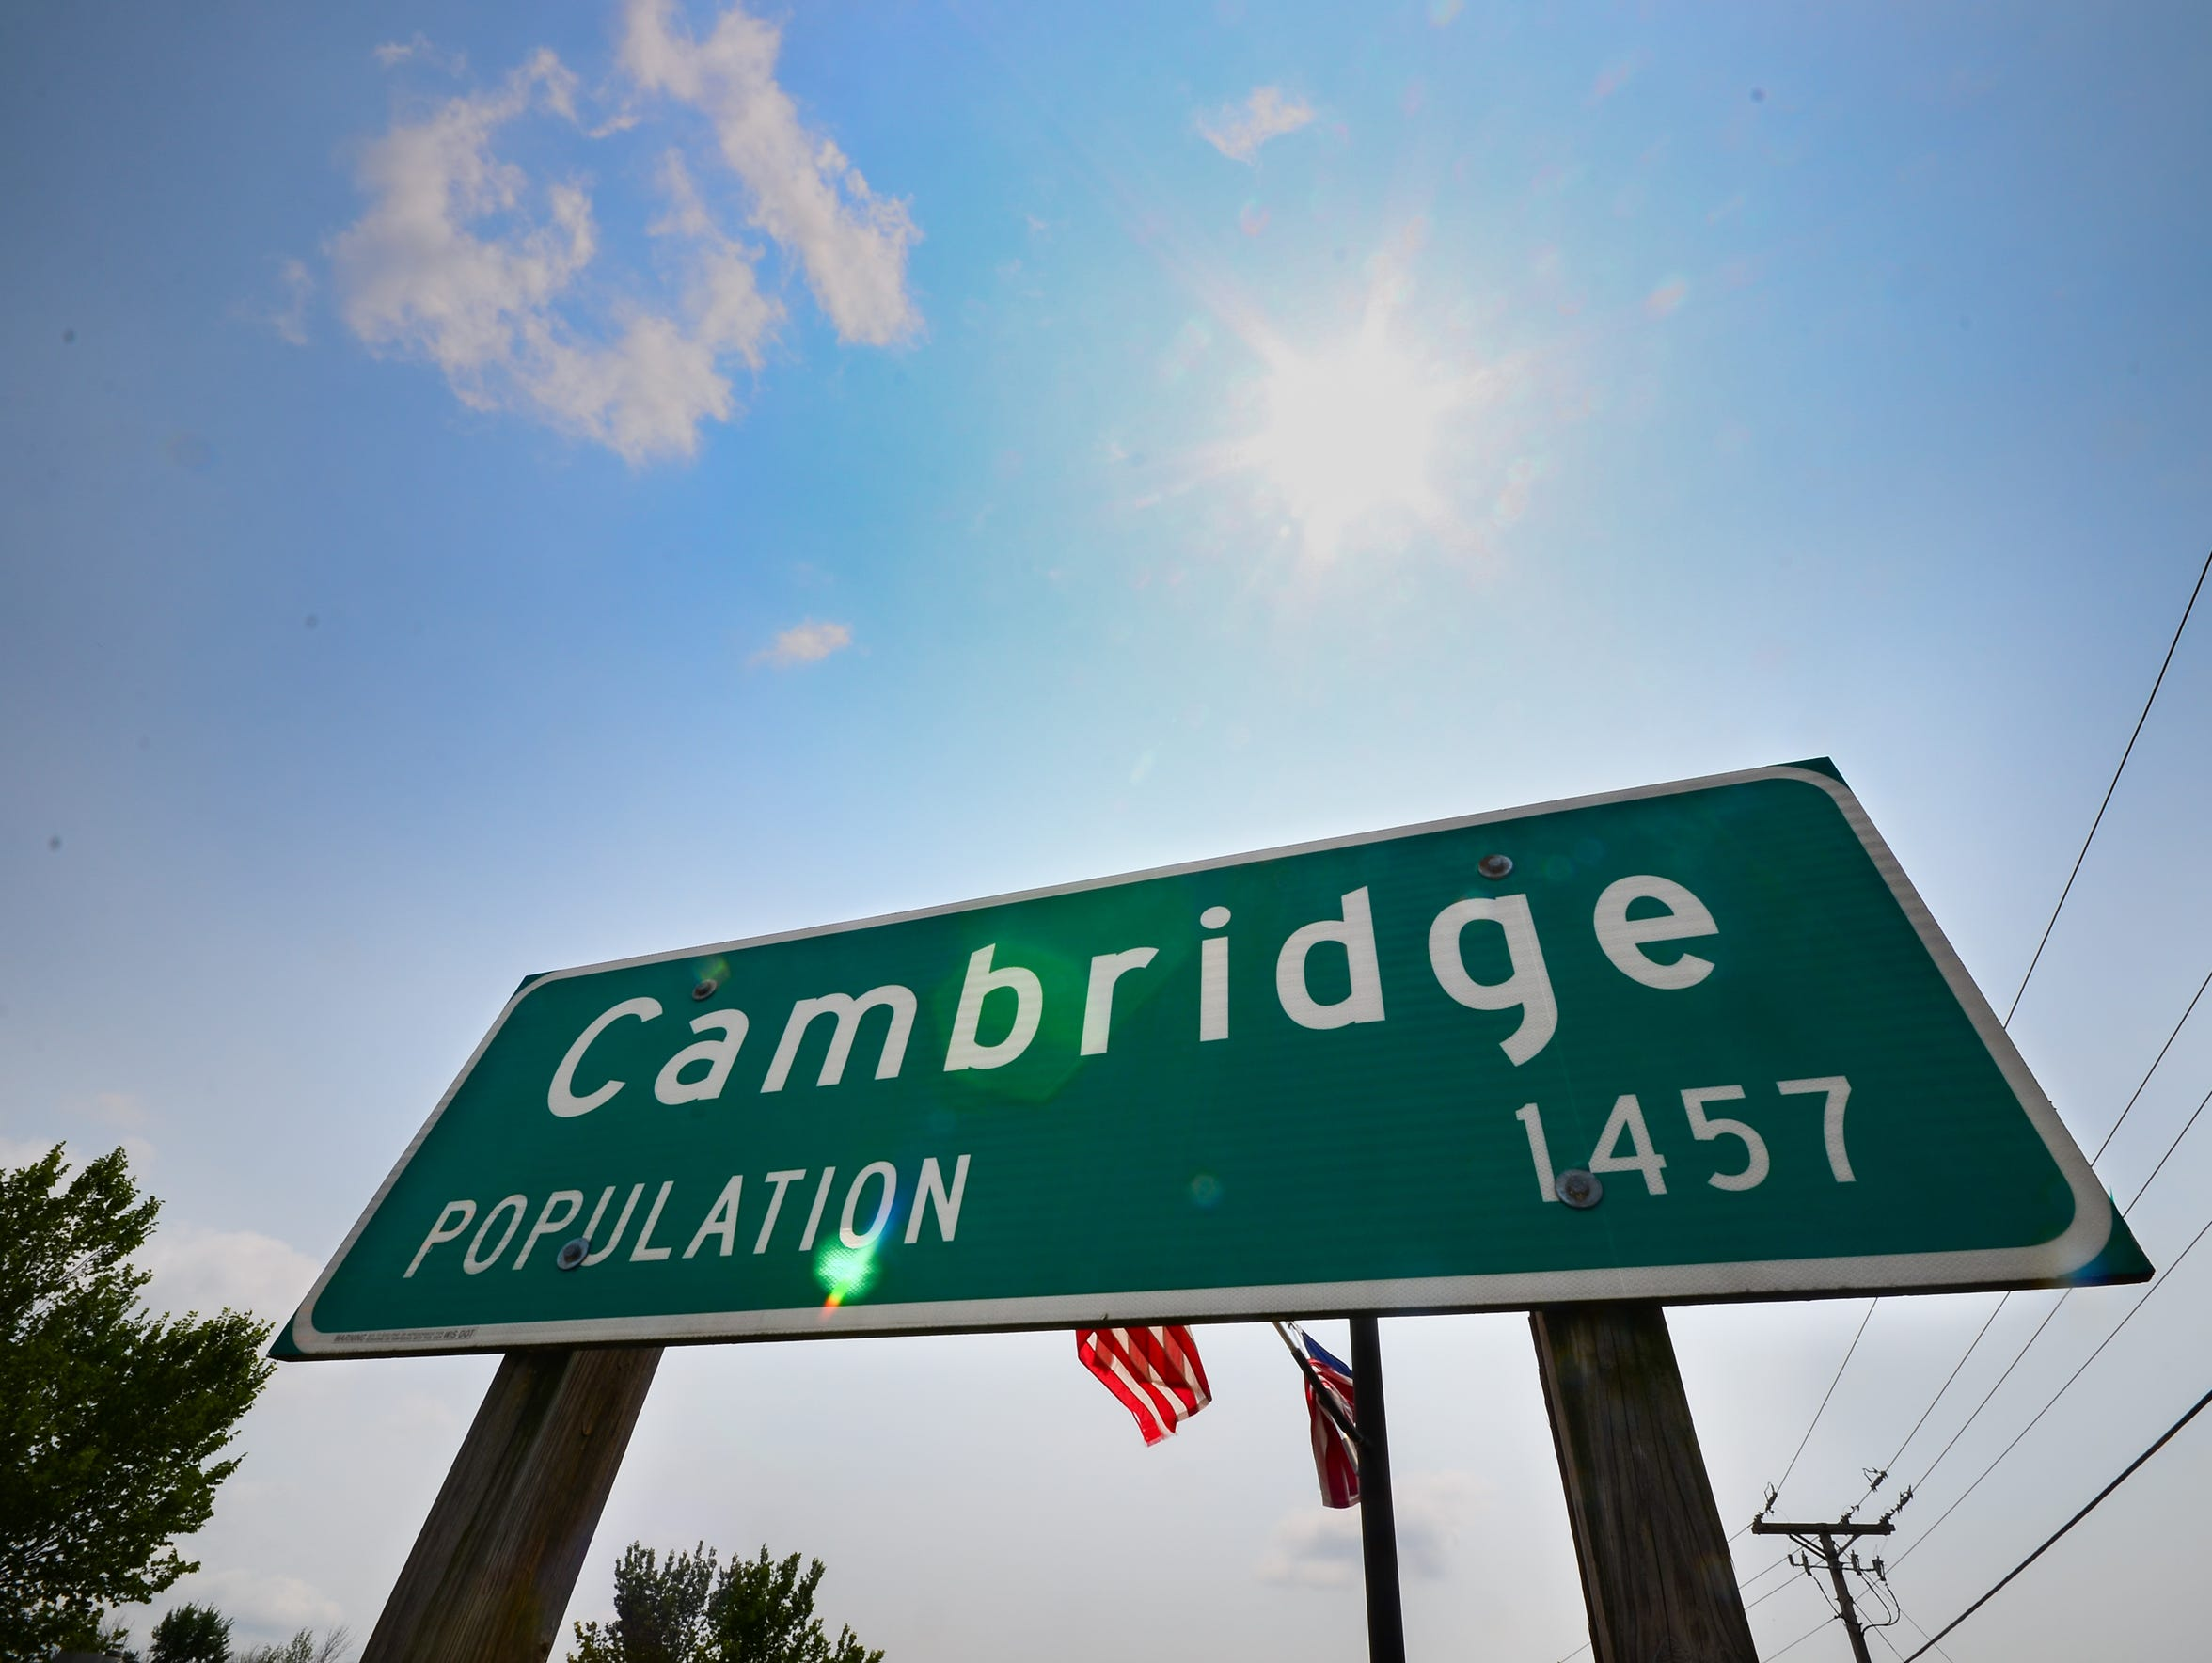 A sign at the edge of town shows Cambridge's population of 1,457 from the 2010 census.